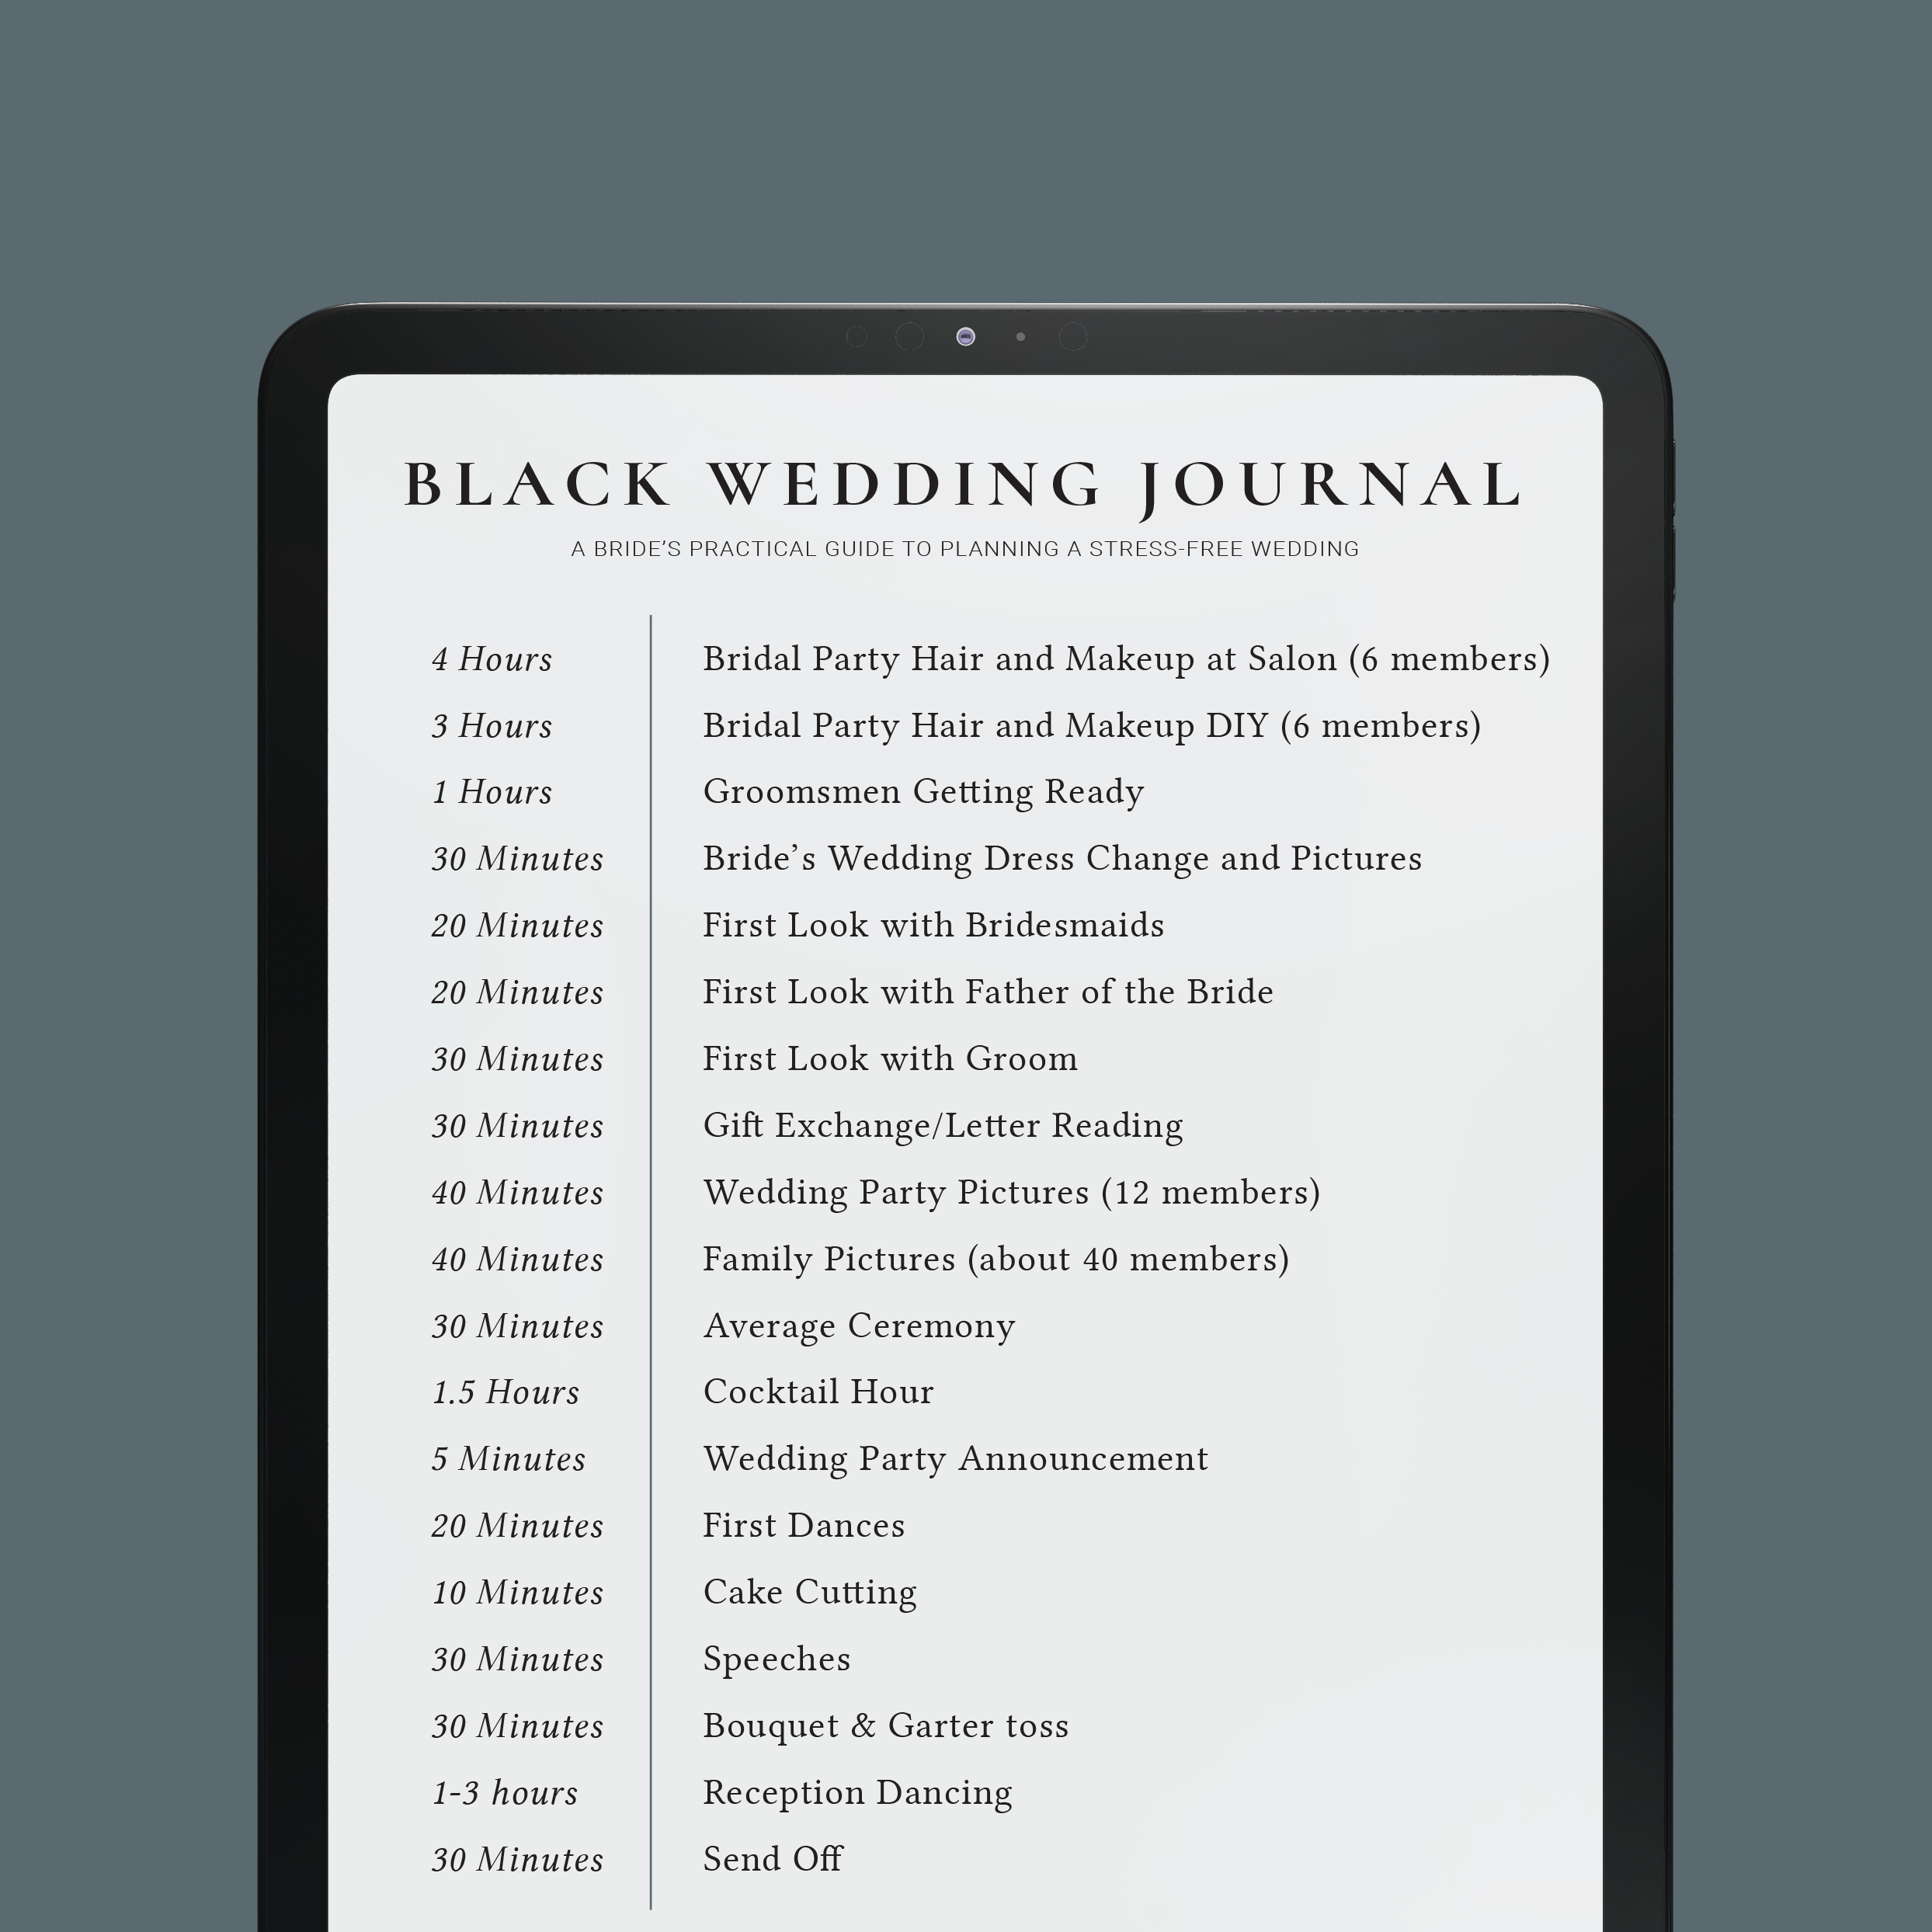 Guide to Build a perfect wedding timeline - $0.00